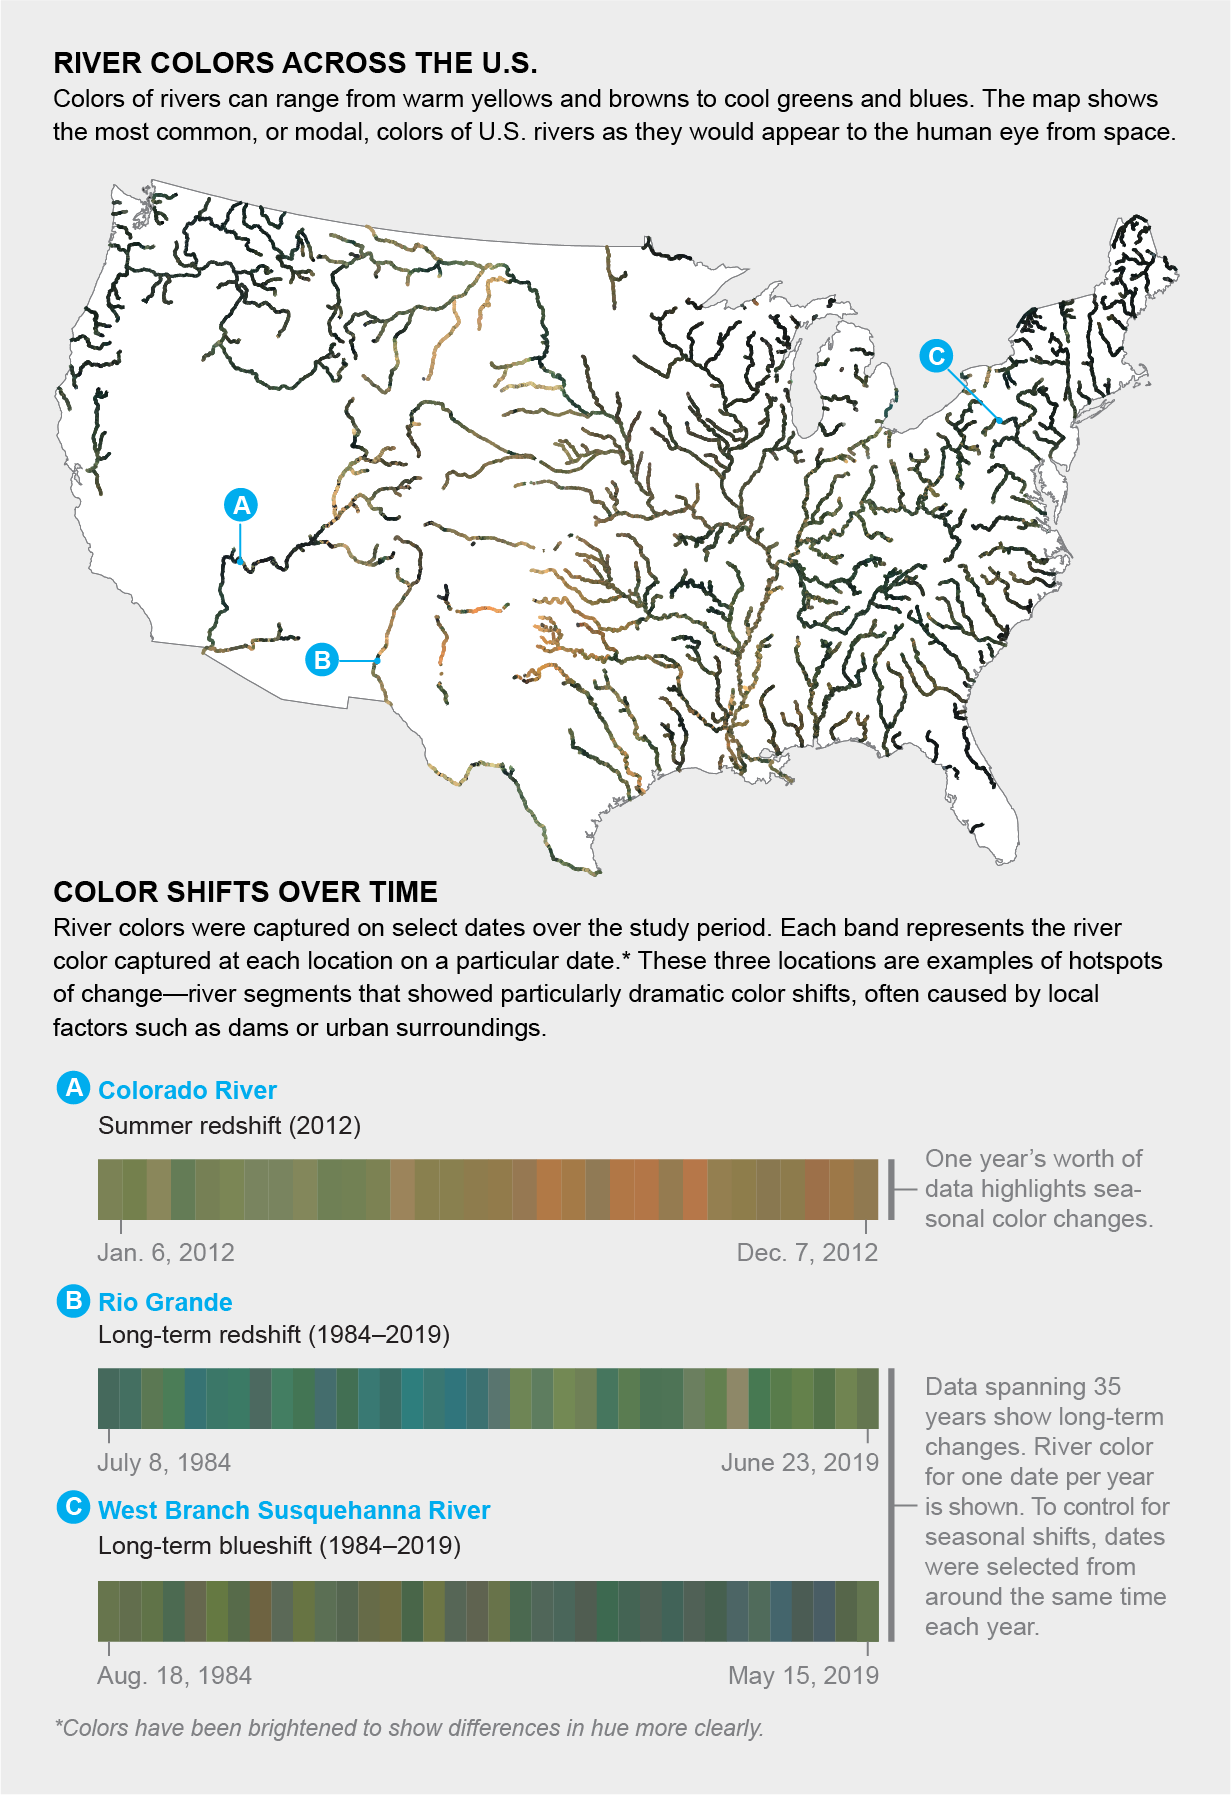 Map shows most common river colors across the U.S.; time lines show long-term or seasonal color shifts in three locations.